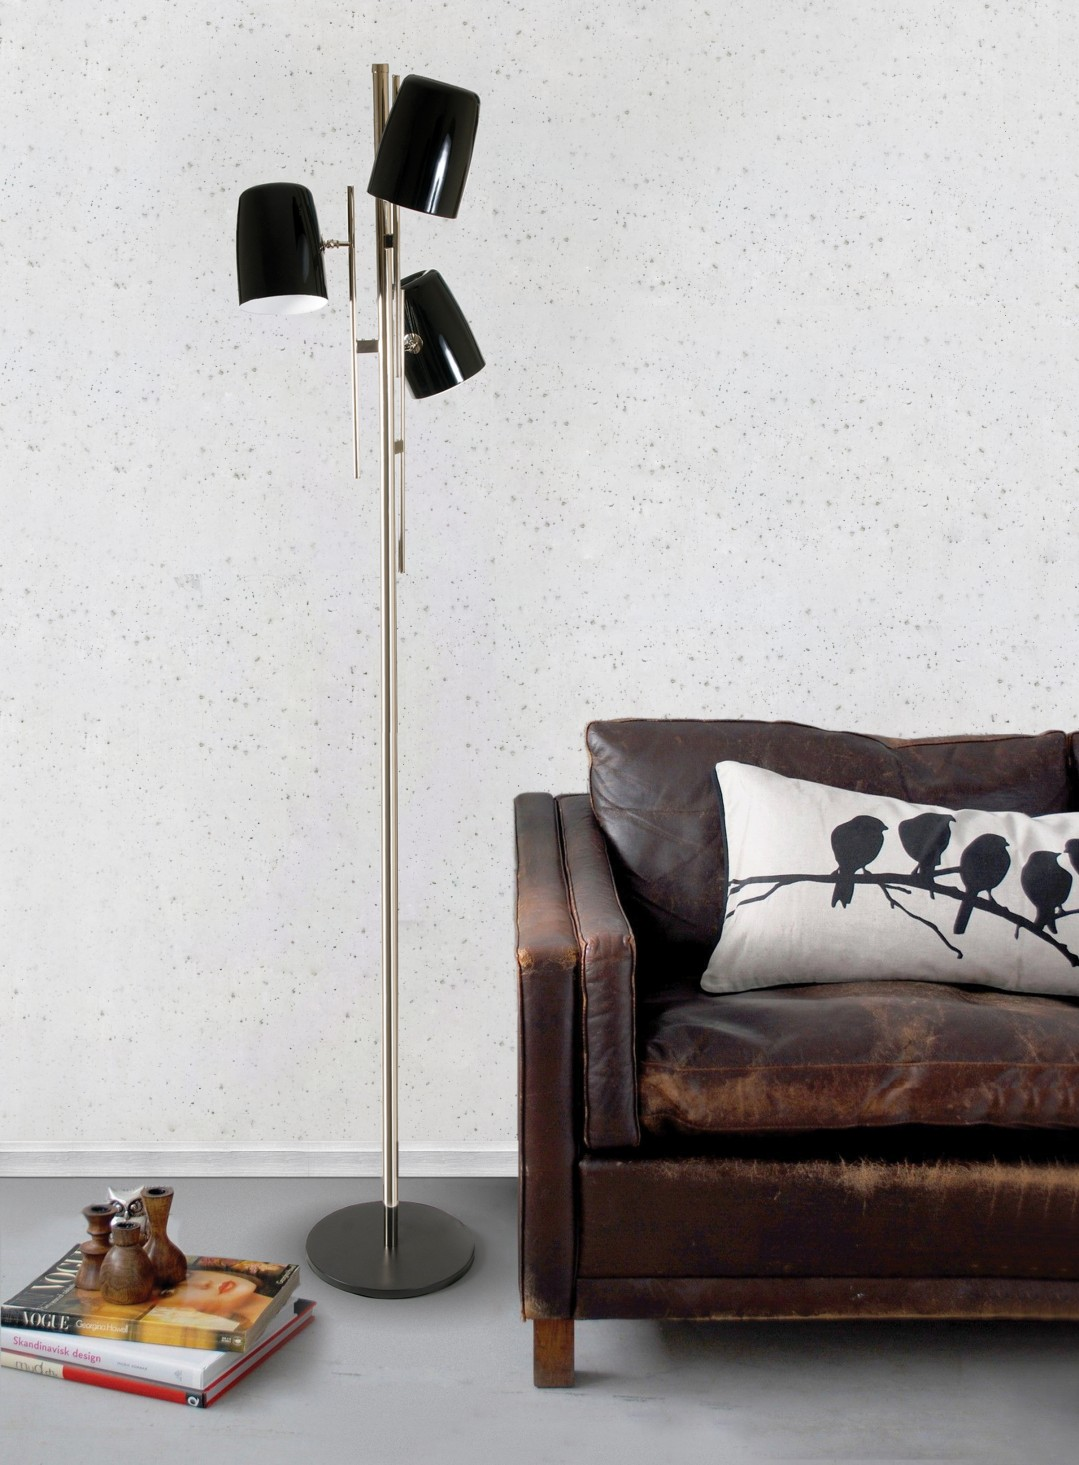 triple lampshade Best Mid-Century TripleLamp Shade Floor Lamps! cole floor ambience 01 HR349a9b618807085e57e23bccf753b074